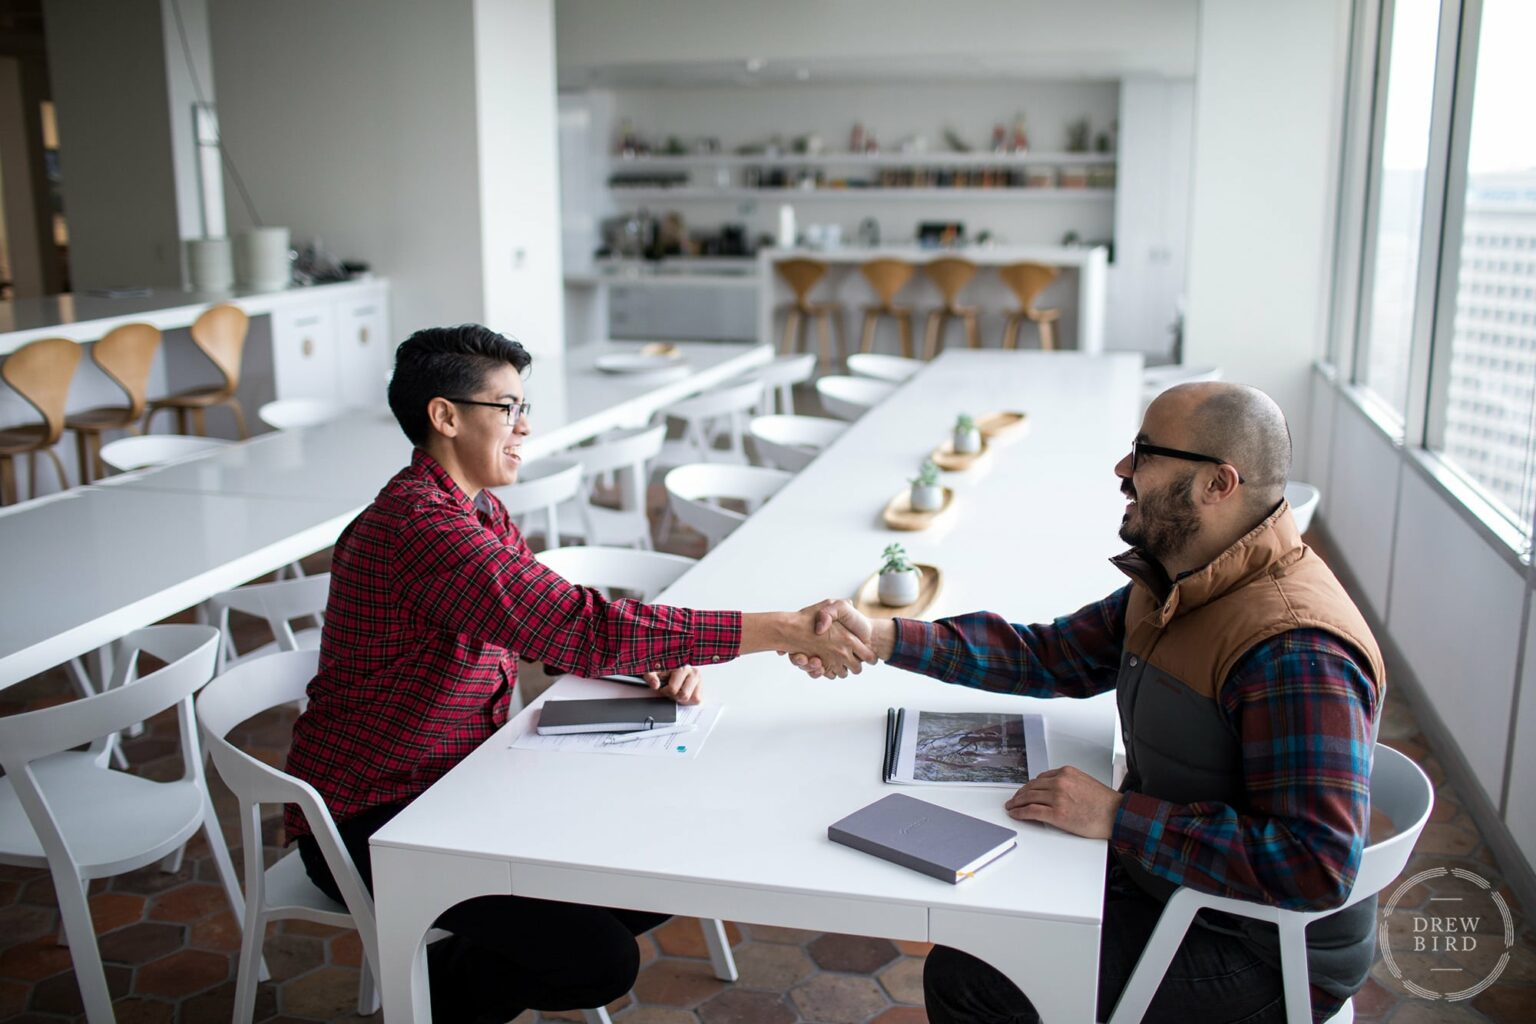 Two men shaking hands in corporate office. San Francisco corporate lifestyle photographer Drew Bird.